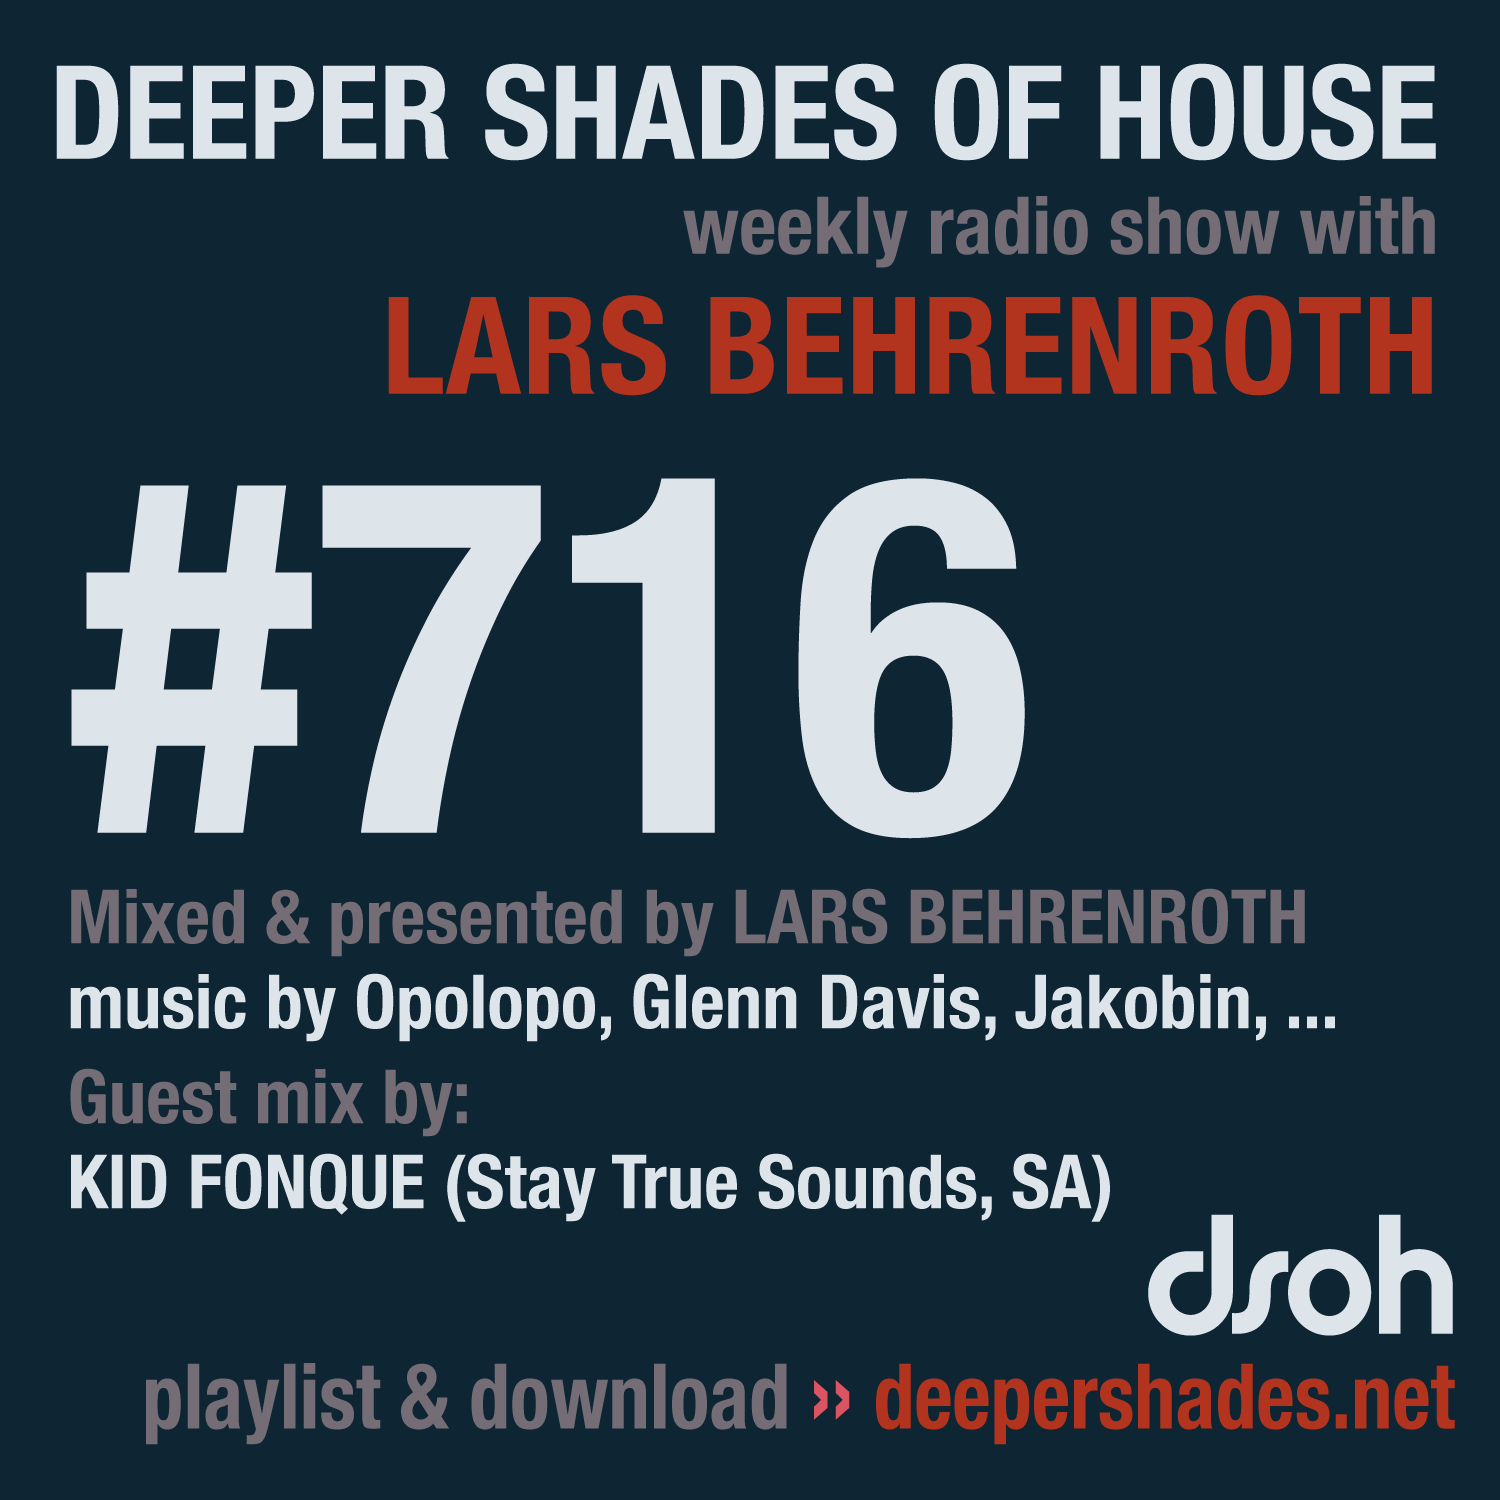 Deeper Shades Of House 716